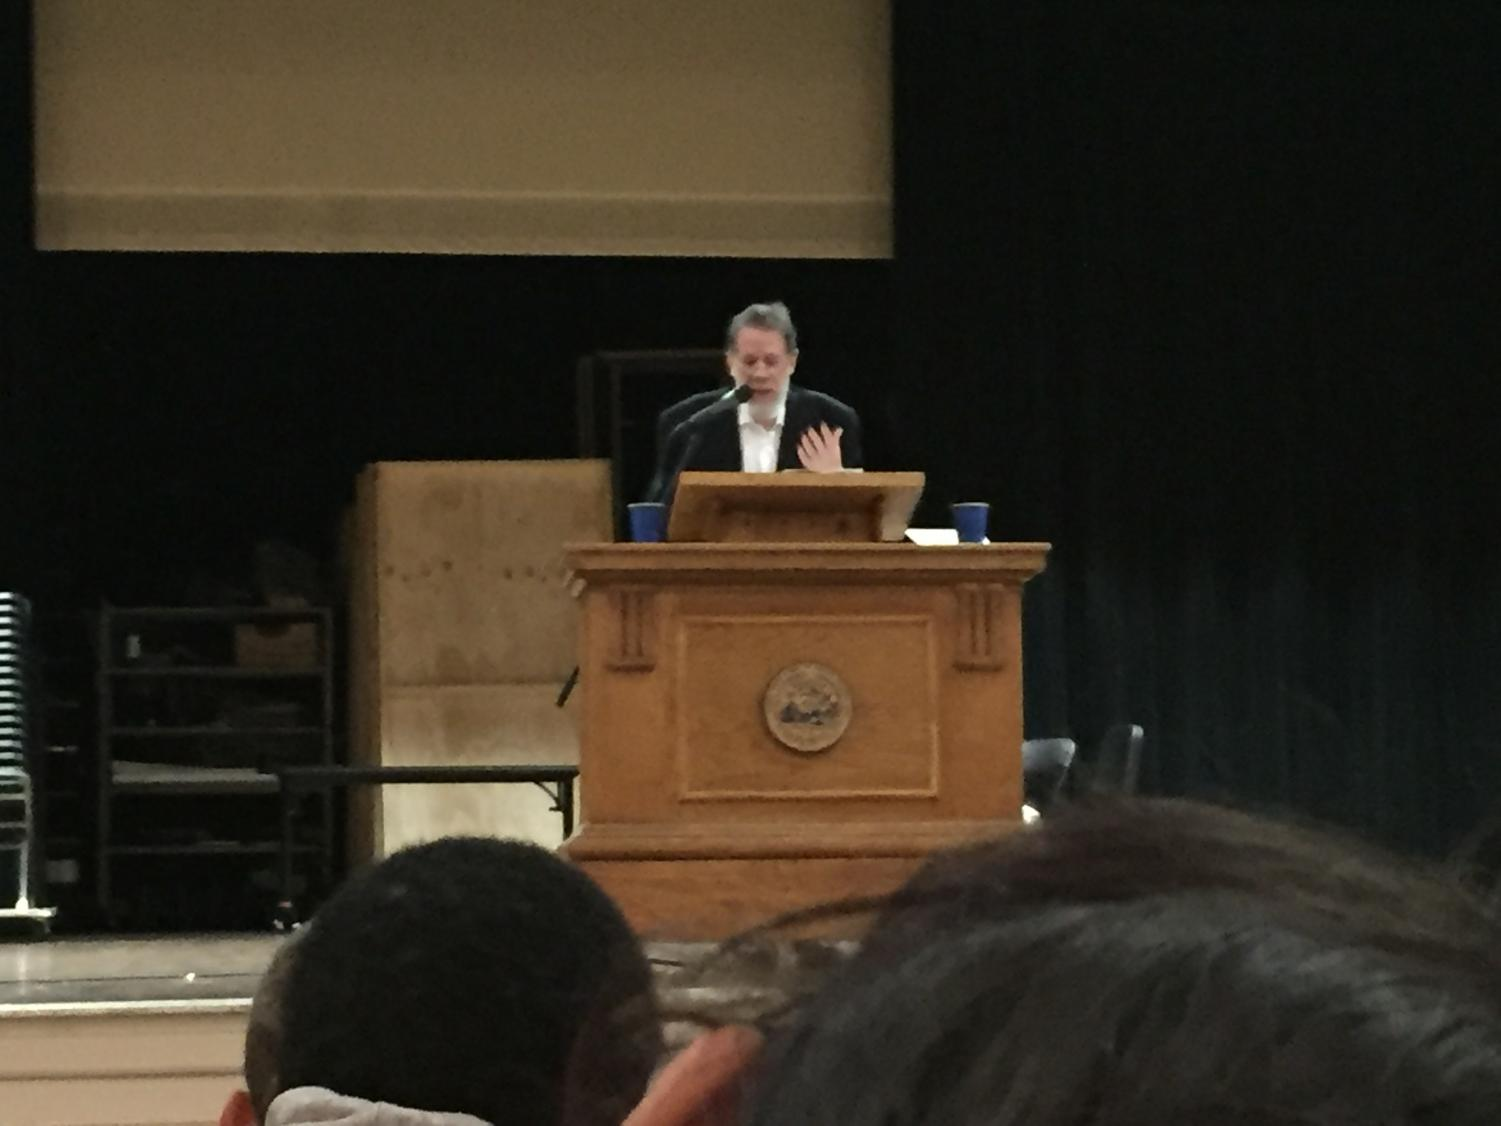 Poet Martin Espada left a lasting impression on students who heard his poetry on Oct. 12.